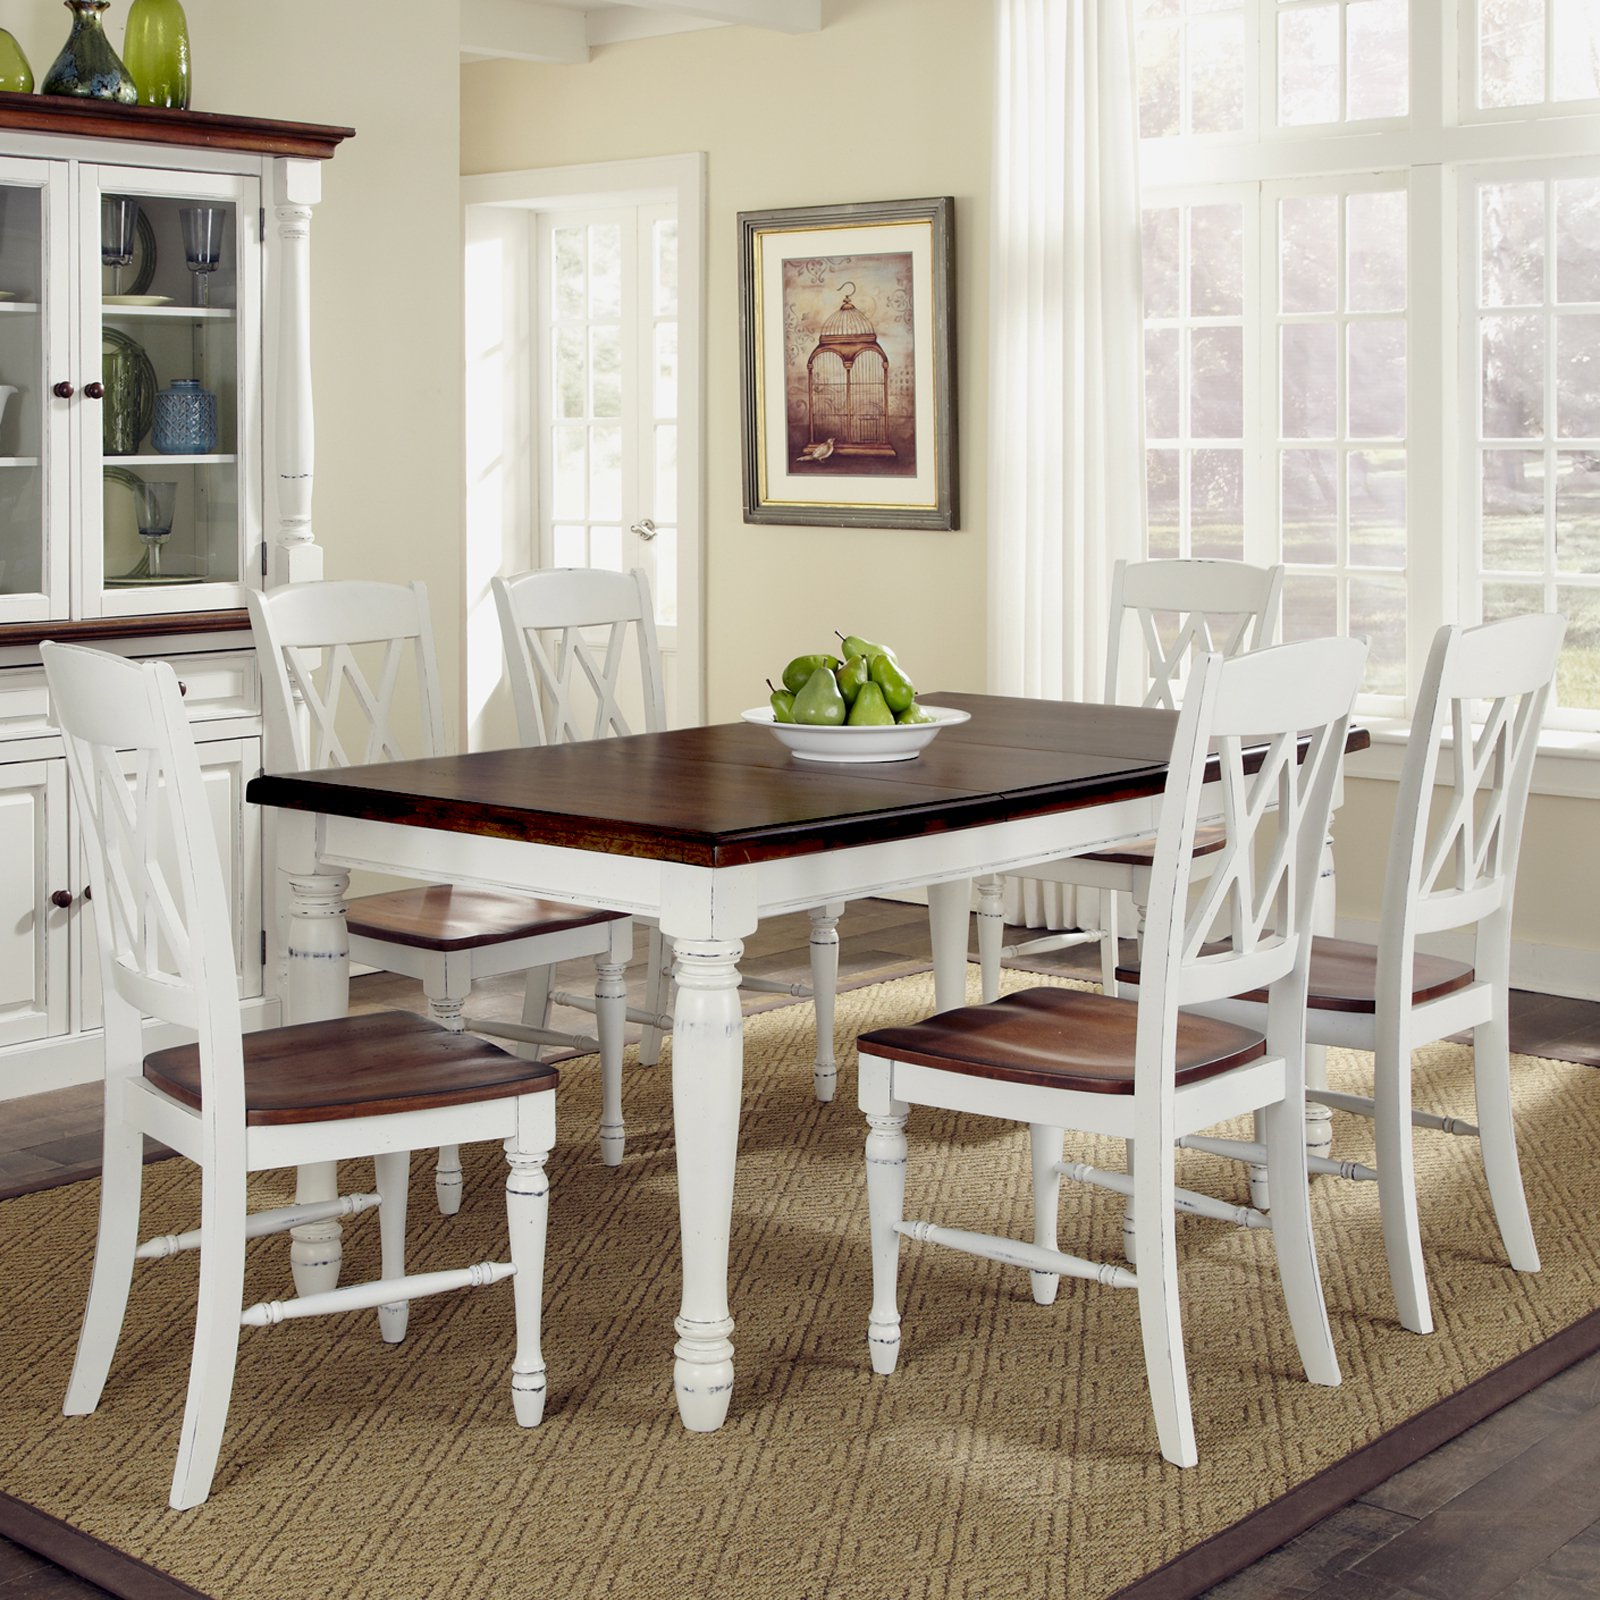 Home styles monarch rectangular dining table and 6 double x back chairs multiple finishes walmart com